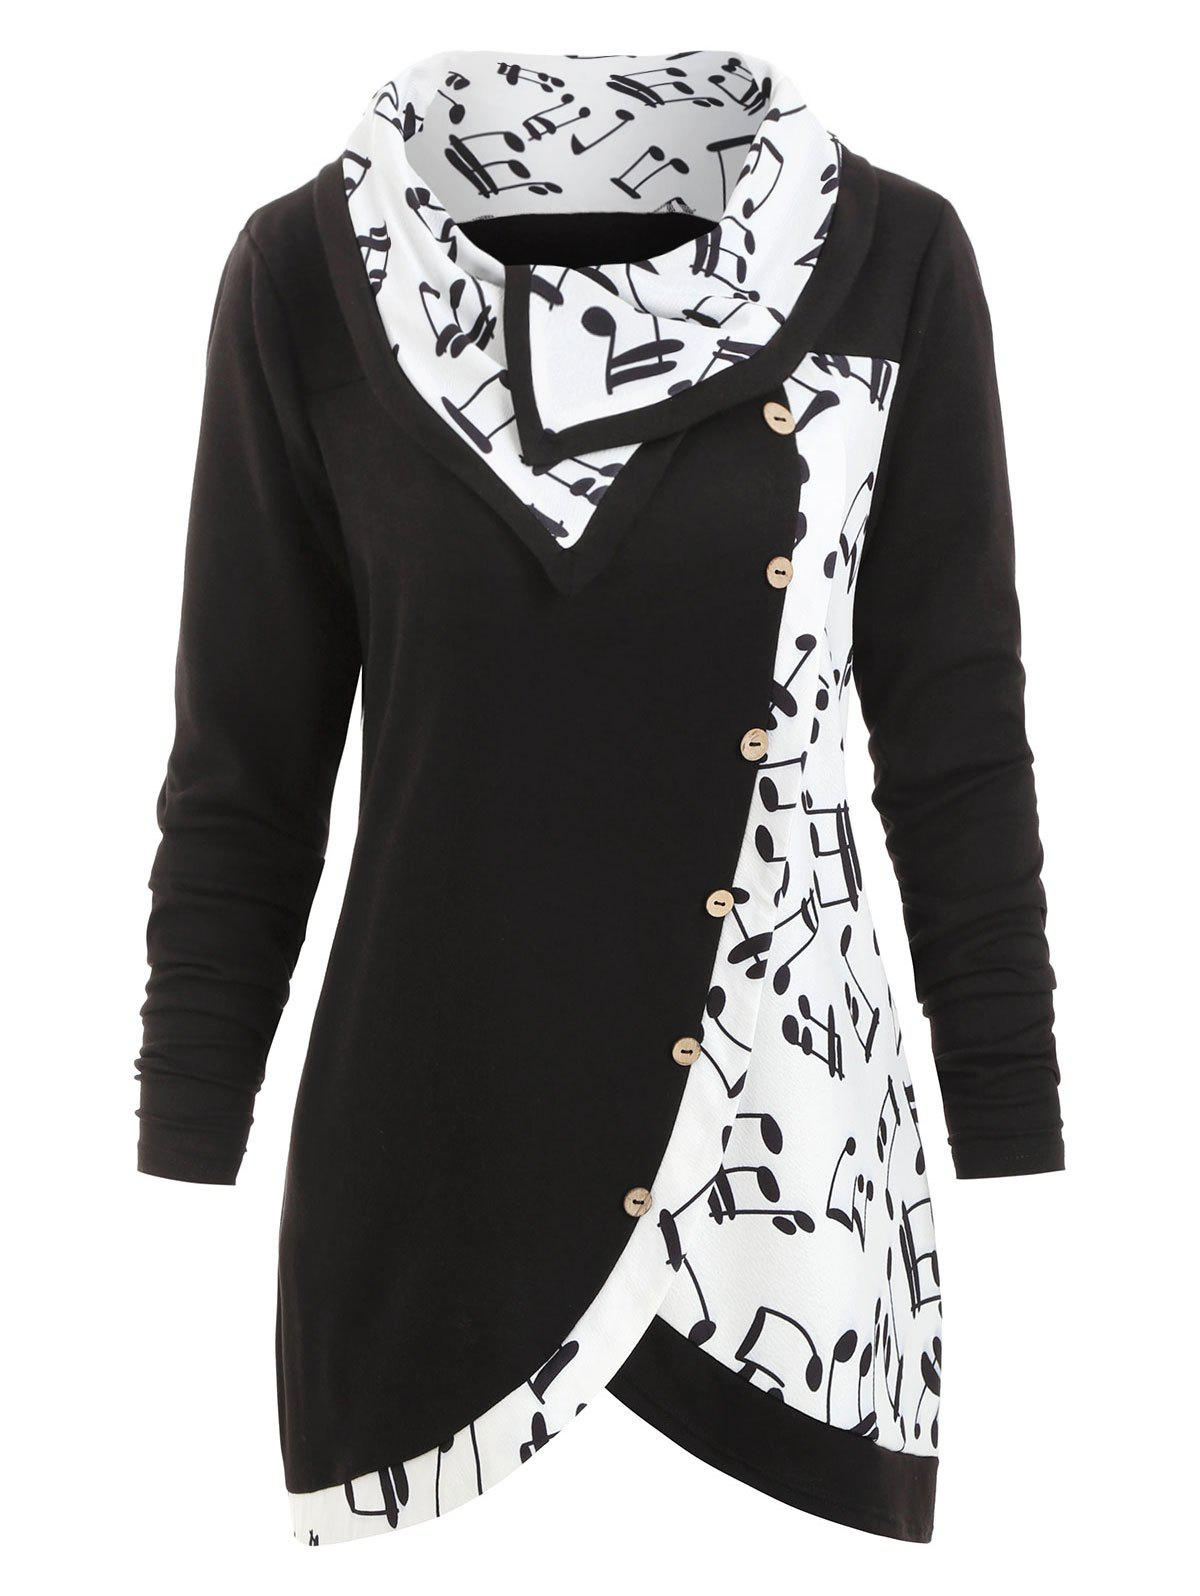 Plus Size Cowl Neck Musical Notes Print Sweatshirt - BLACK L